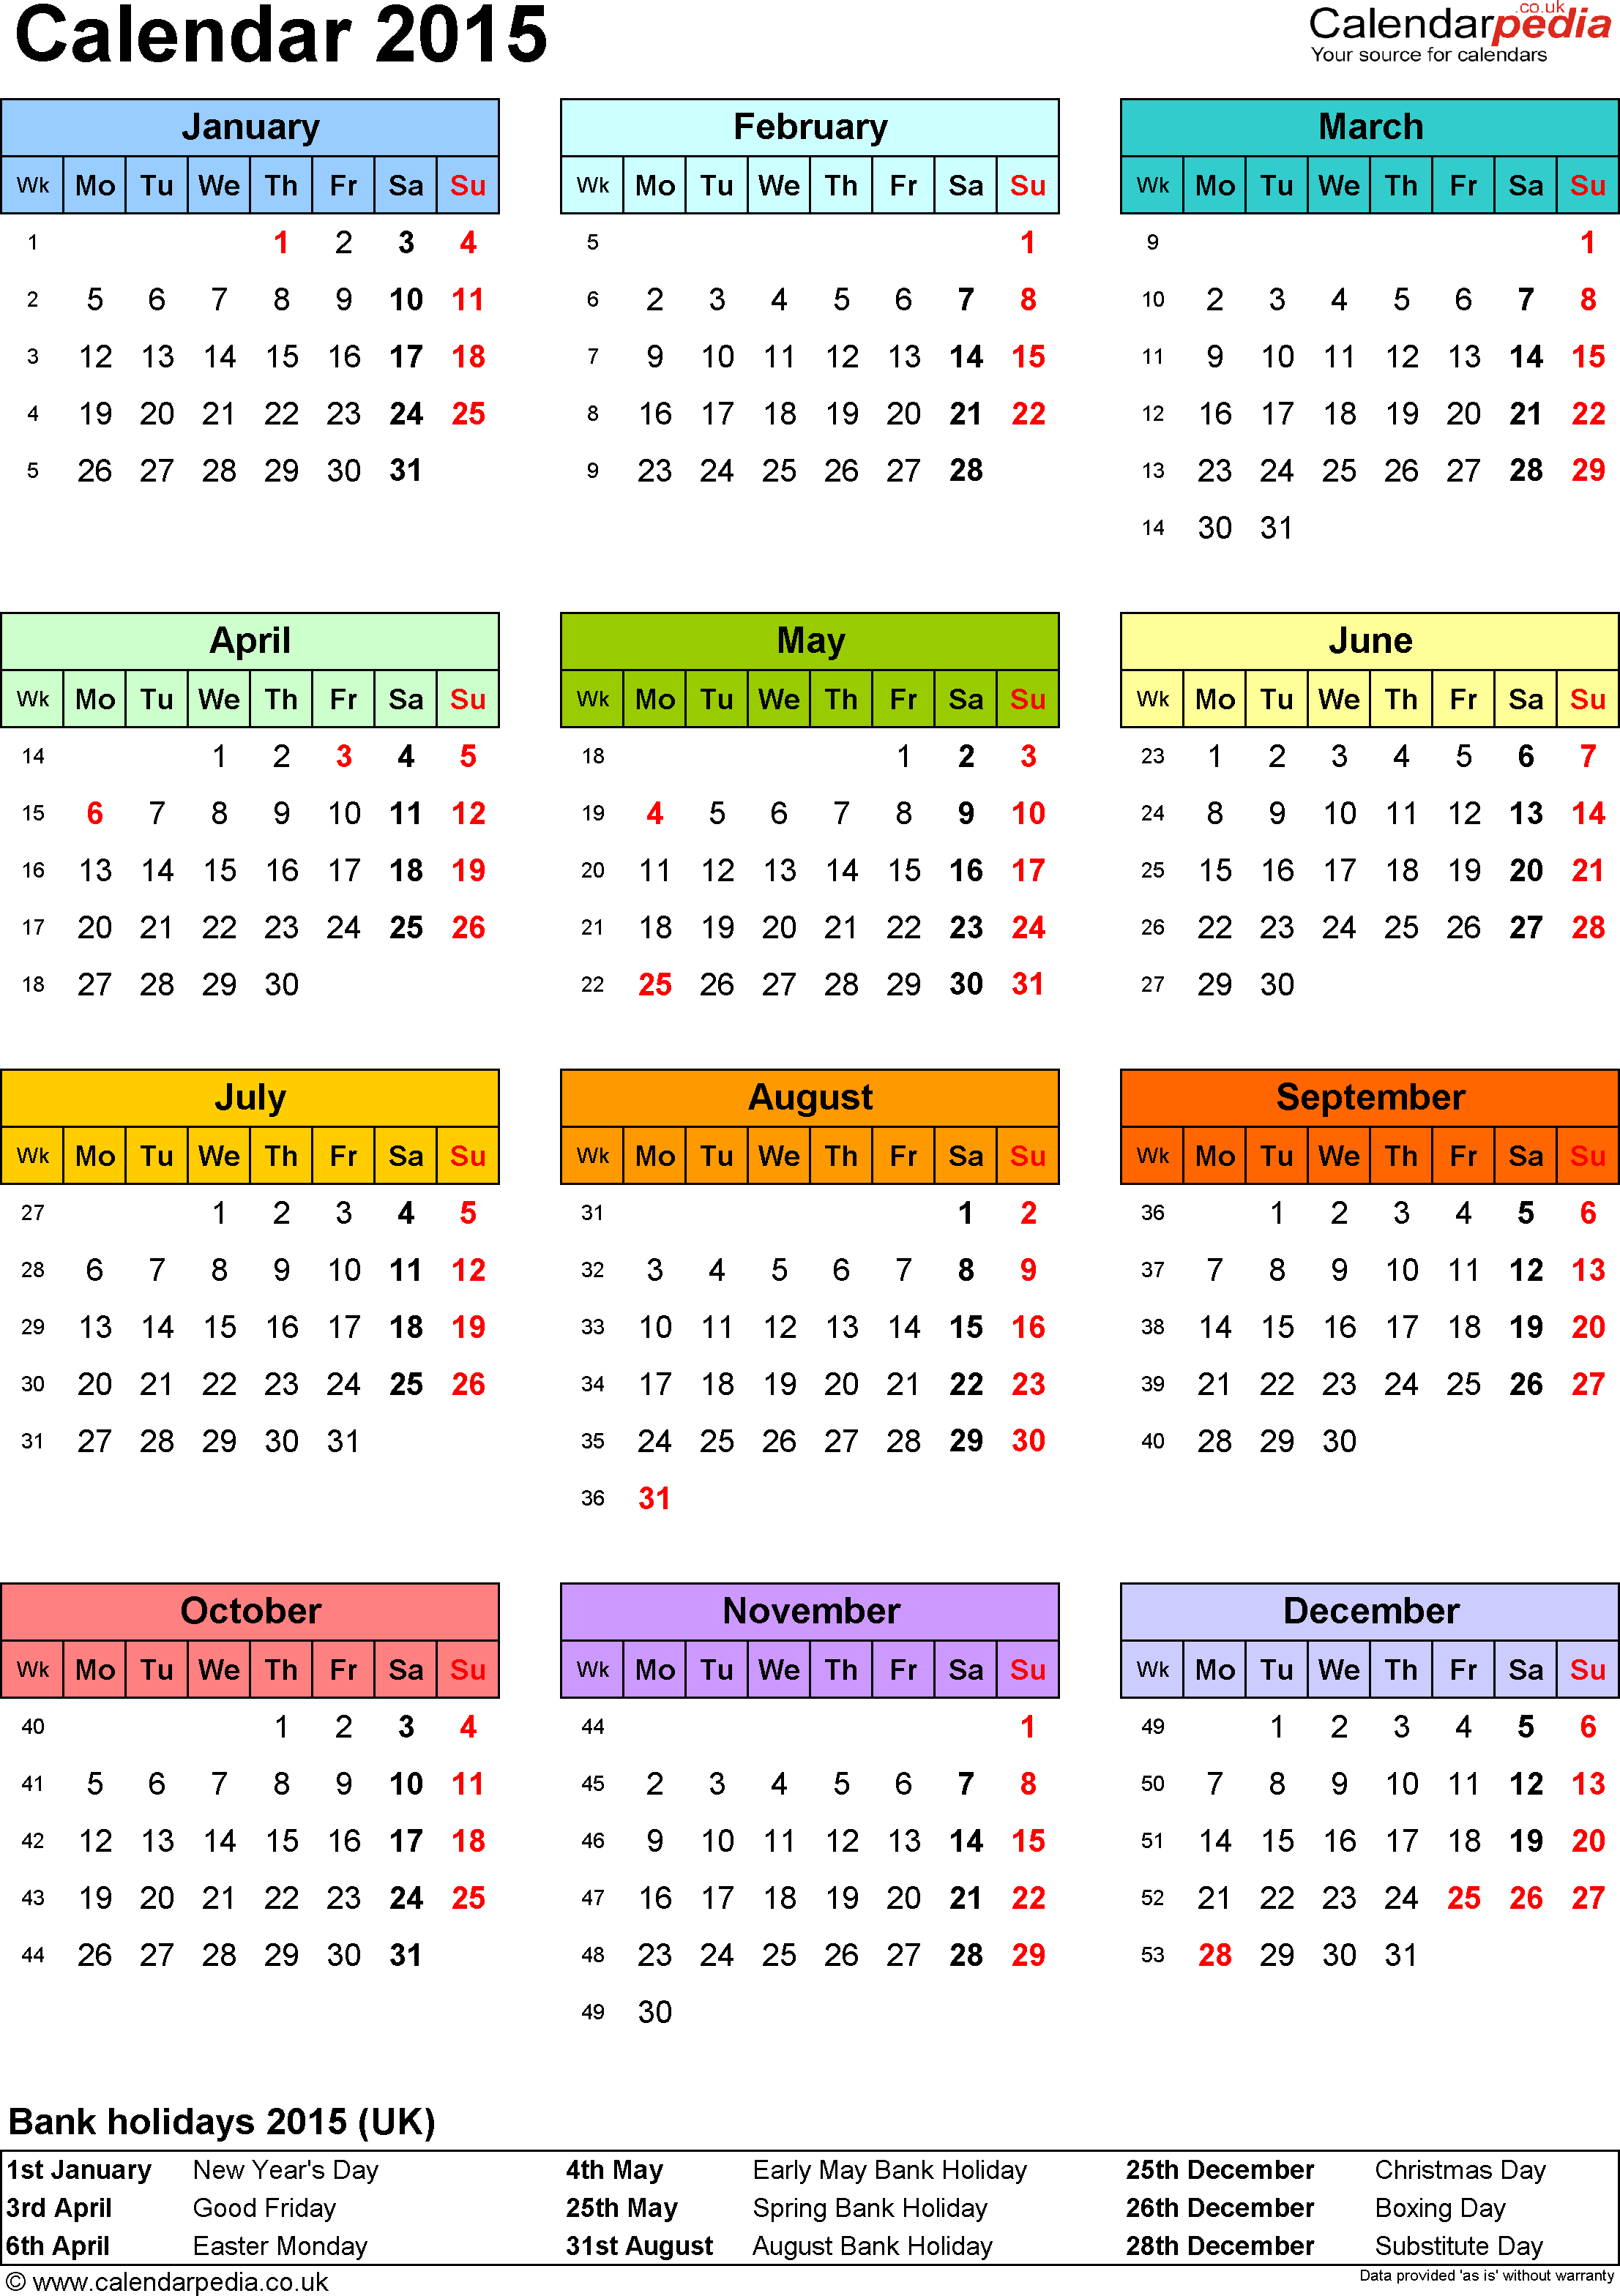 Download Template 14: Yearly calendar 2015 as Excel template, portrait orientation, year overview in colour, one A4 page